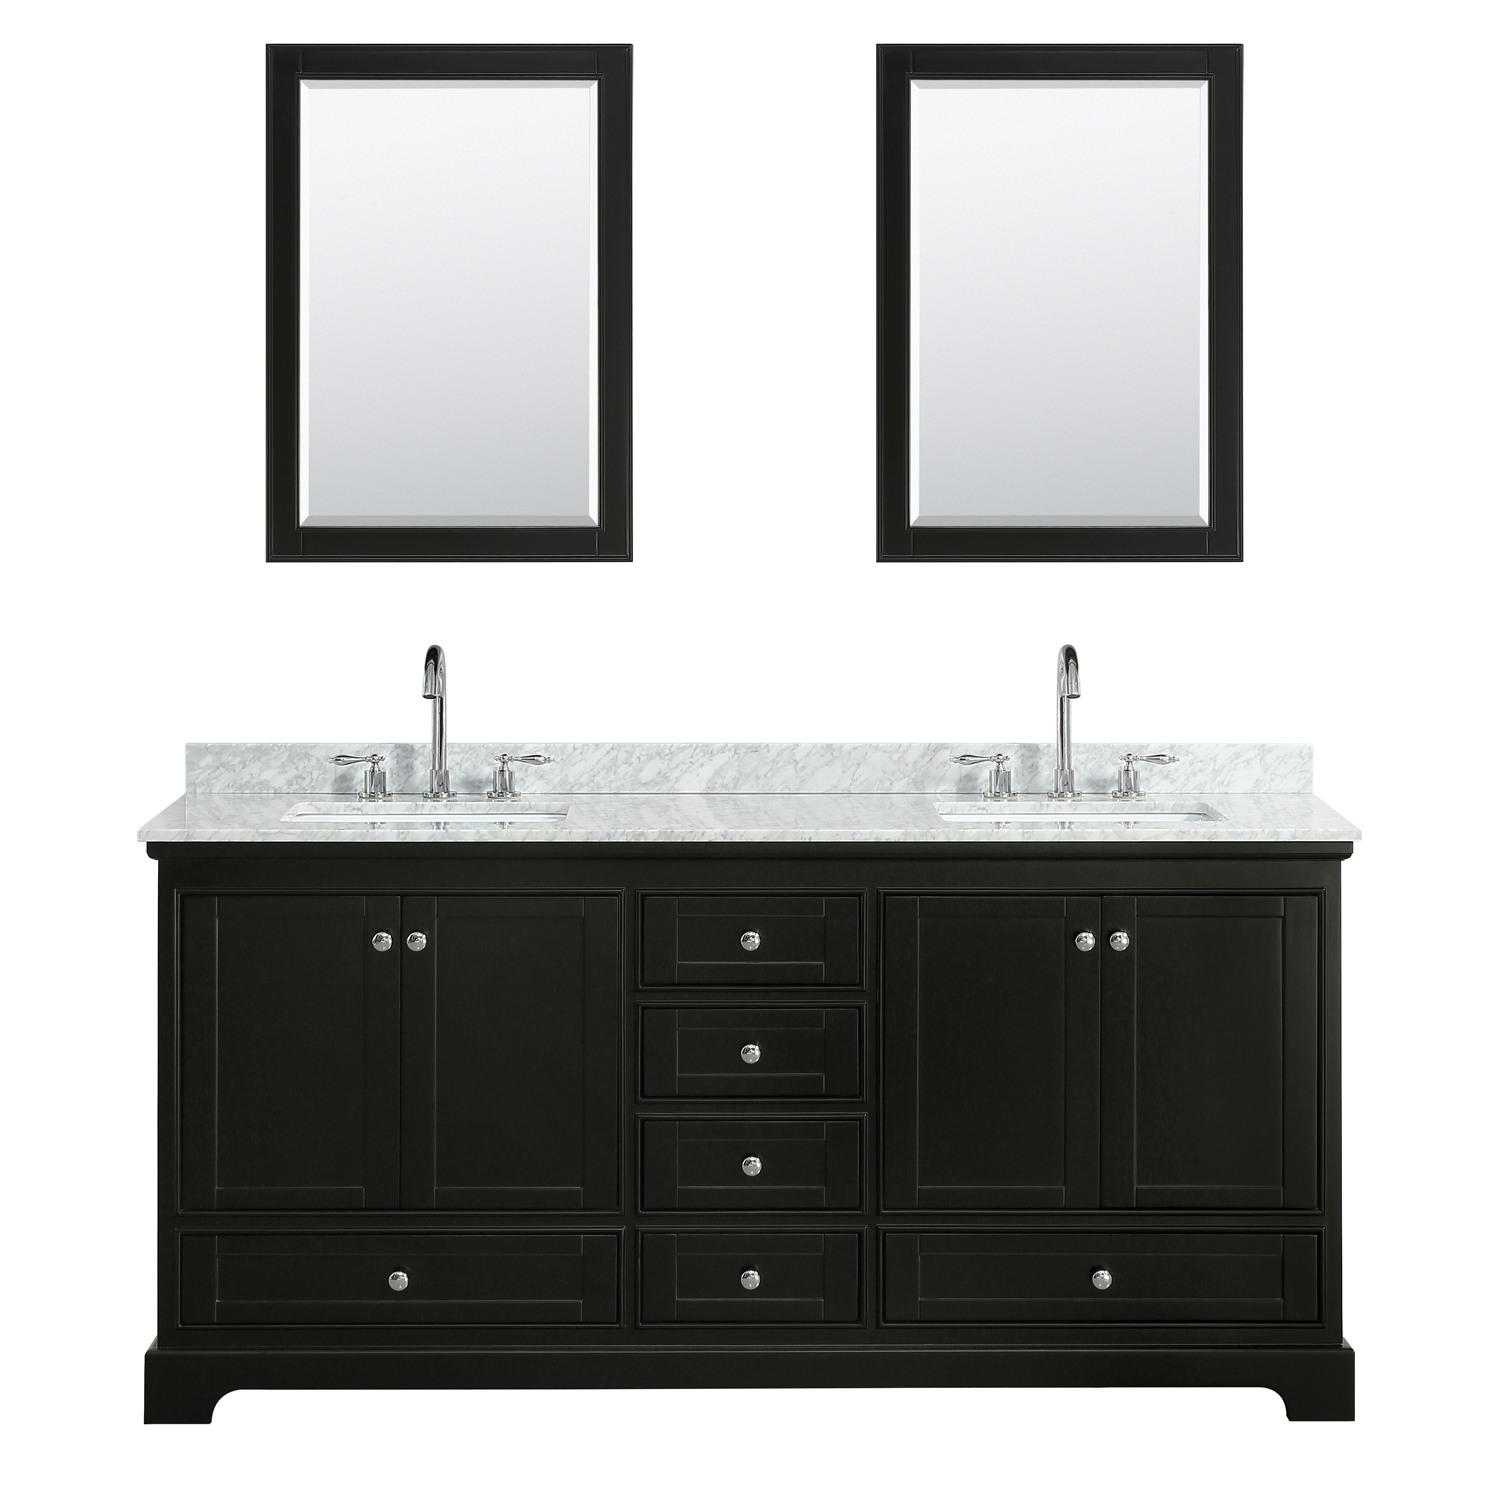 "72"" Double Bathroom Vanity in White Carrara Marble Countertop with Undermount Porcelain Sinks, Medicine Cabinet, Mirror and Color Options"